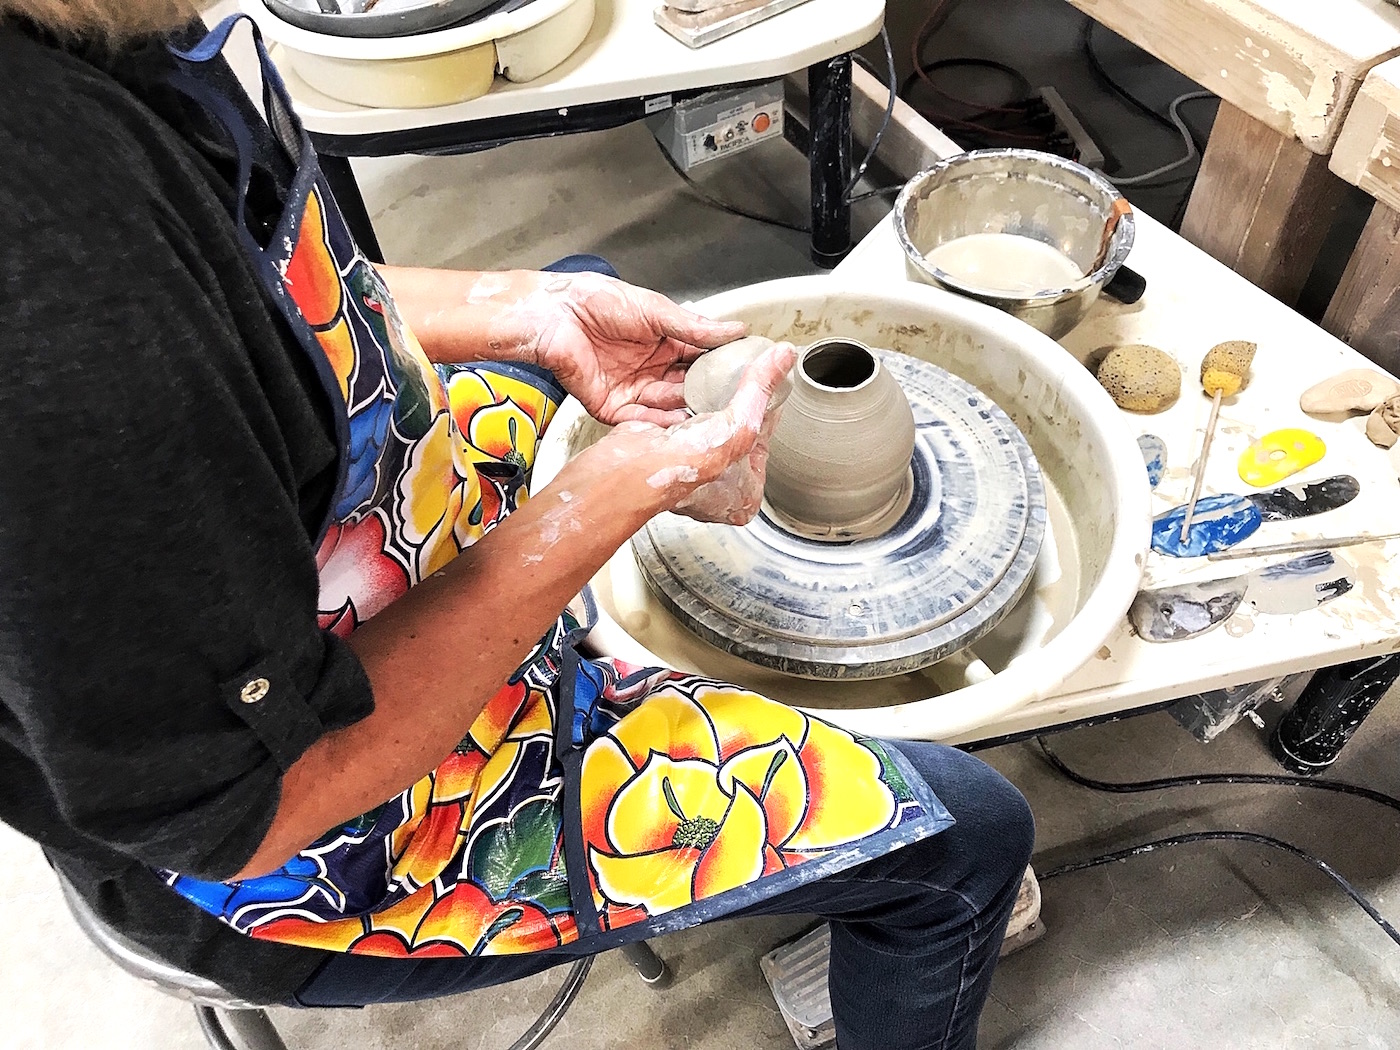 The Best Places to Take Ceramics Classes across the U.S. - Artsy